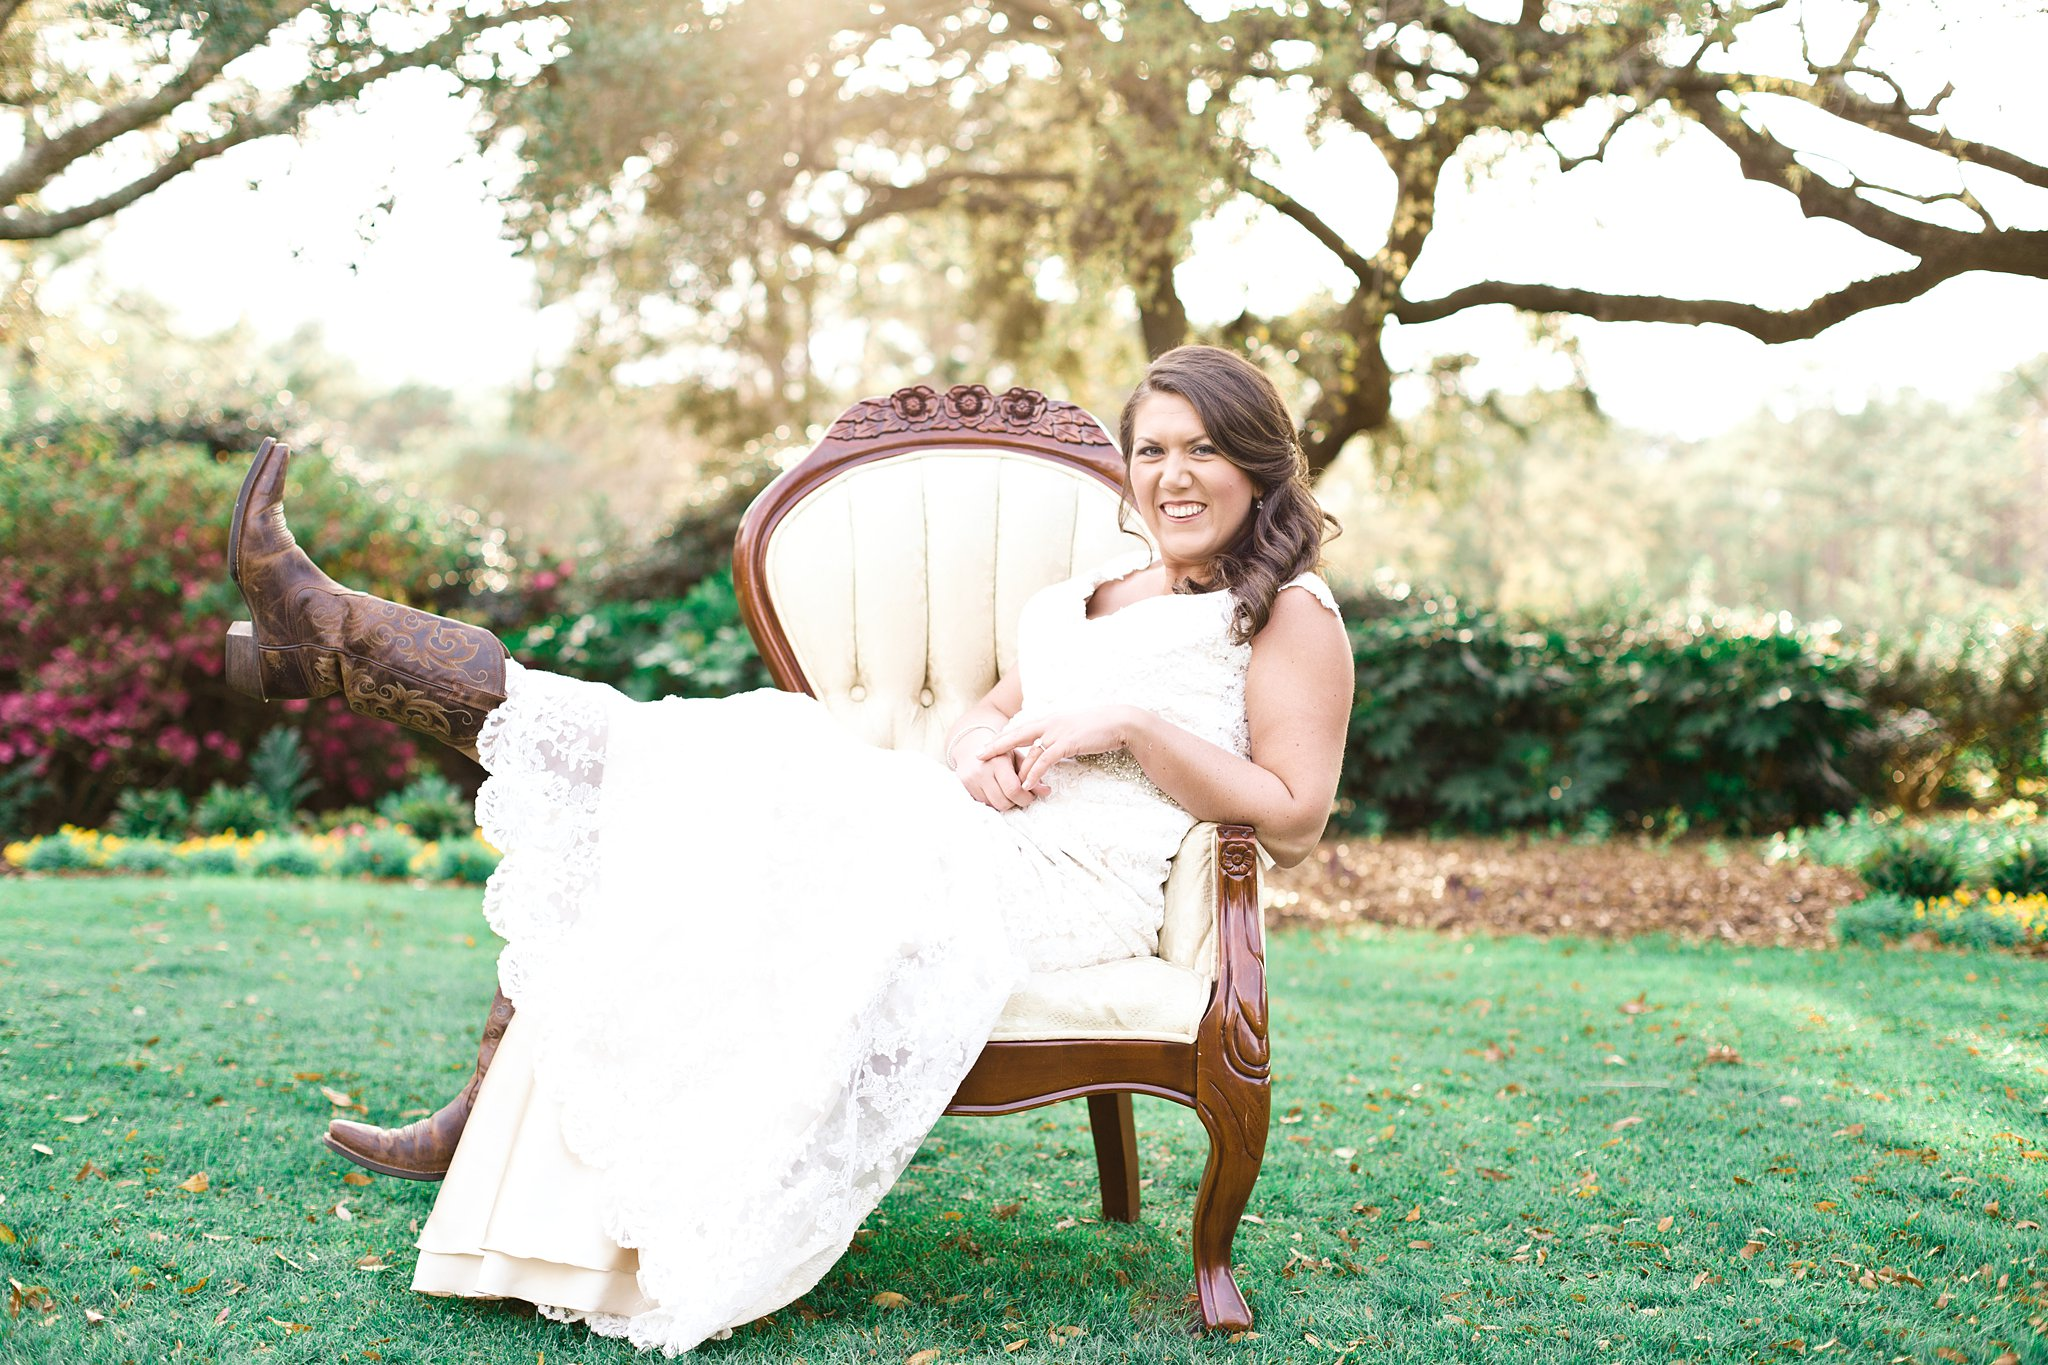 litchfield-golf-country-club-bridal-session-pawleys-island-sc-photos_0144.jpg